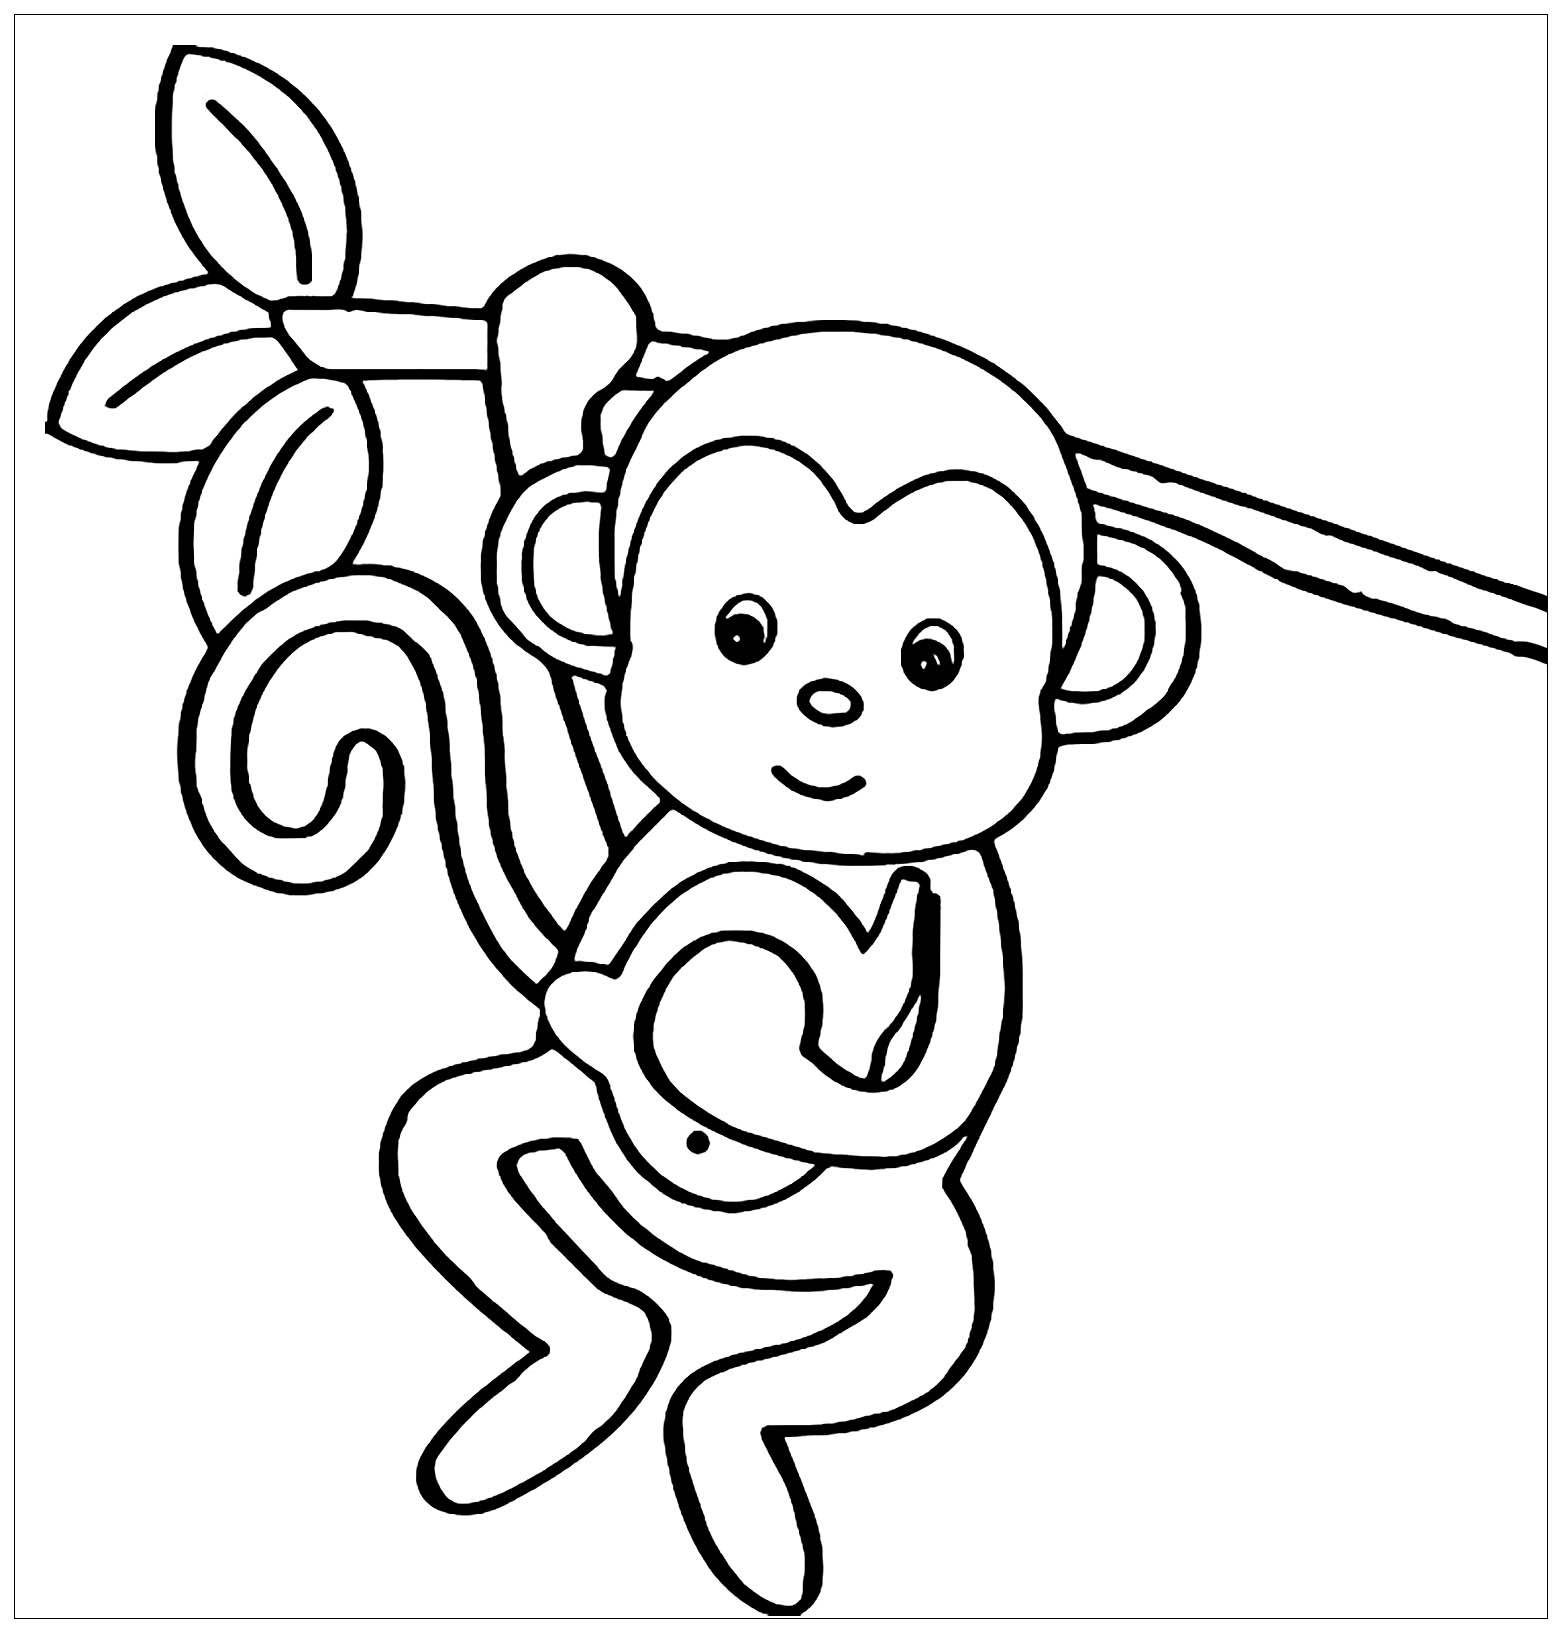 kid outline coloring page monkeys to color for children monkeys kids coloring pages coloring kid outline page